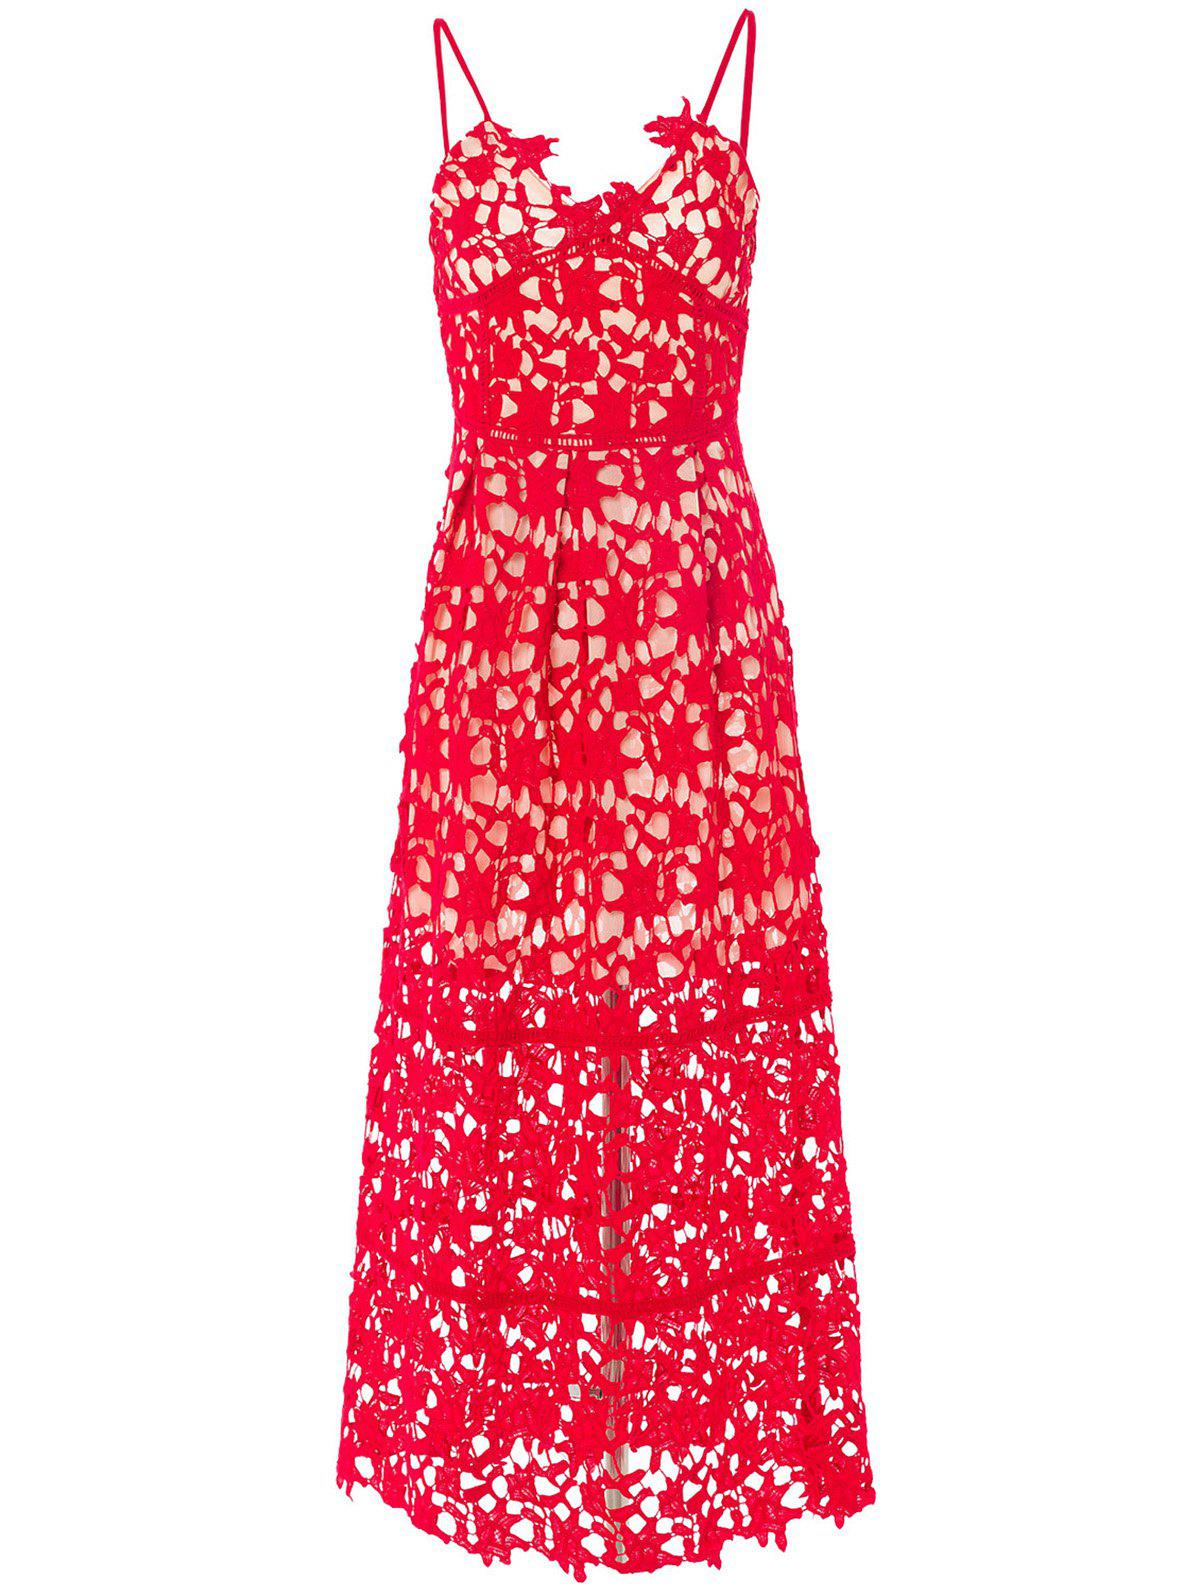 Elegant Spaghetti Strap Sleeveless Backless Solid Color Hollow Out Lace Women's Dress - RED M